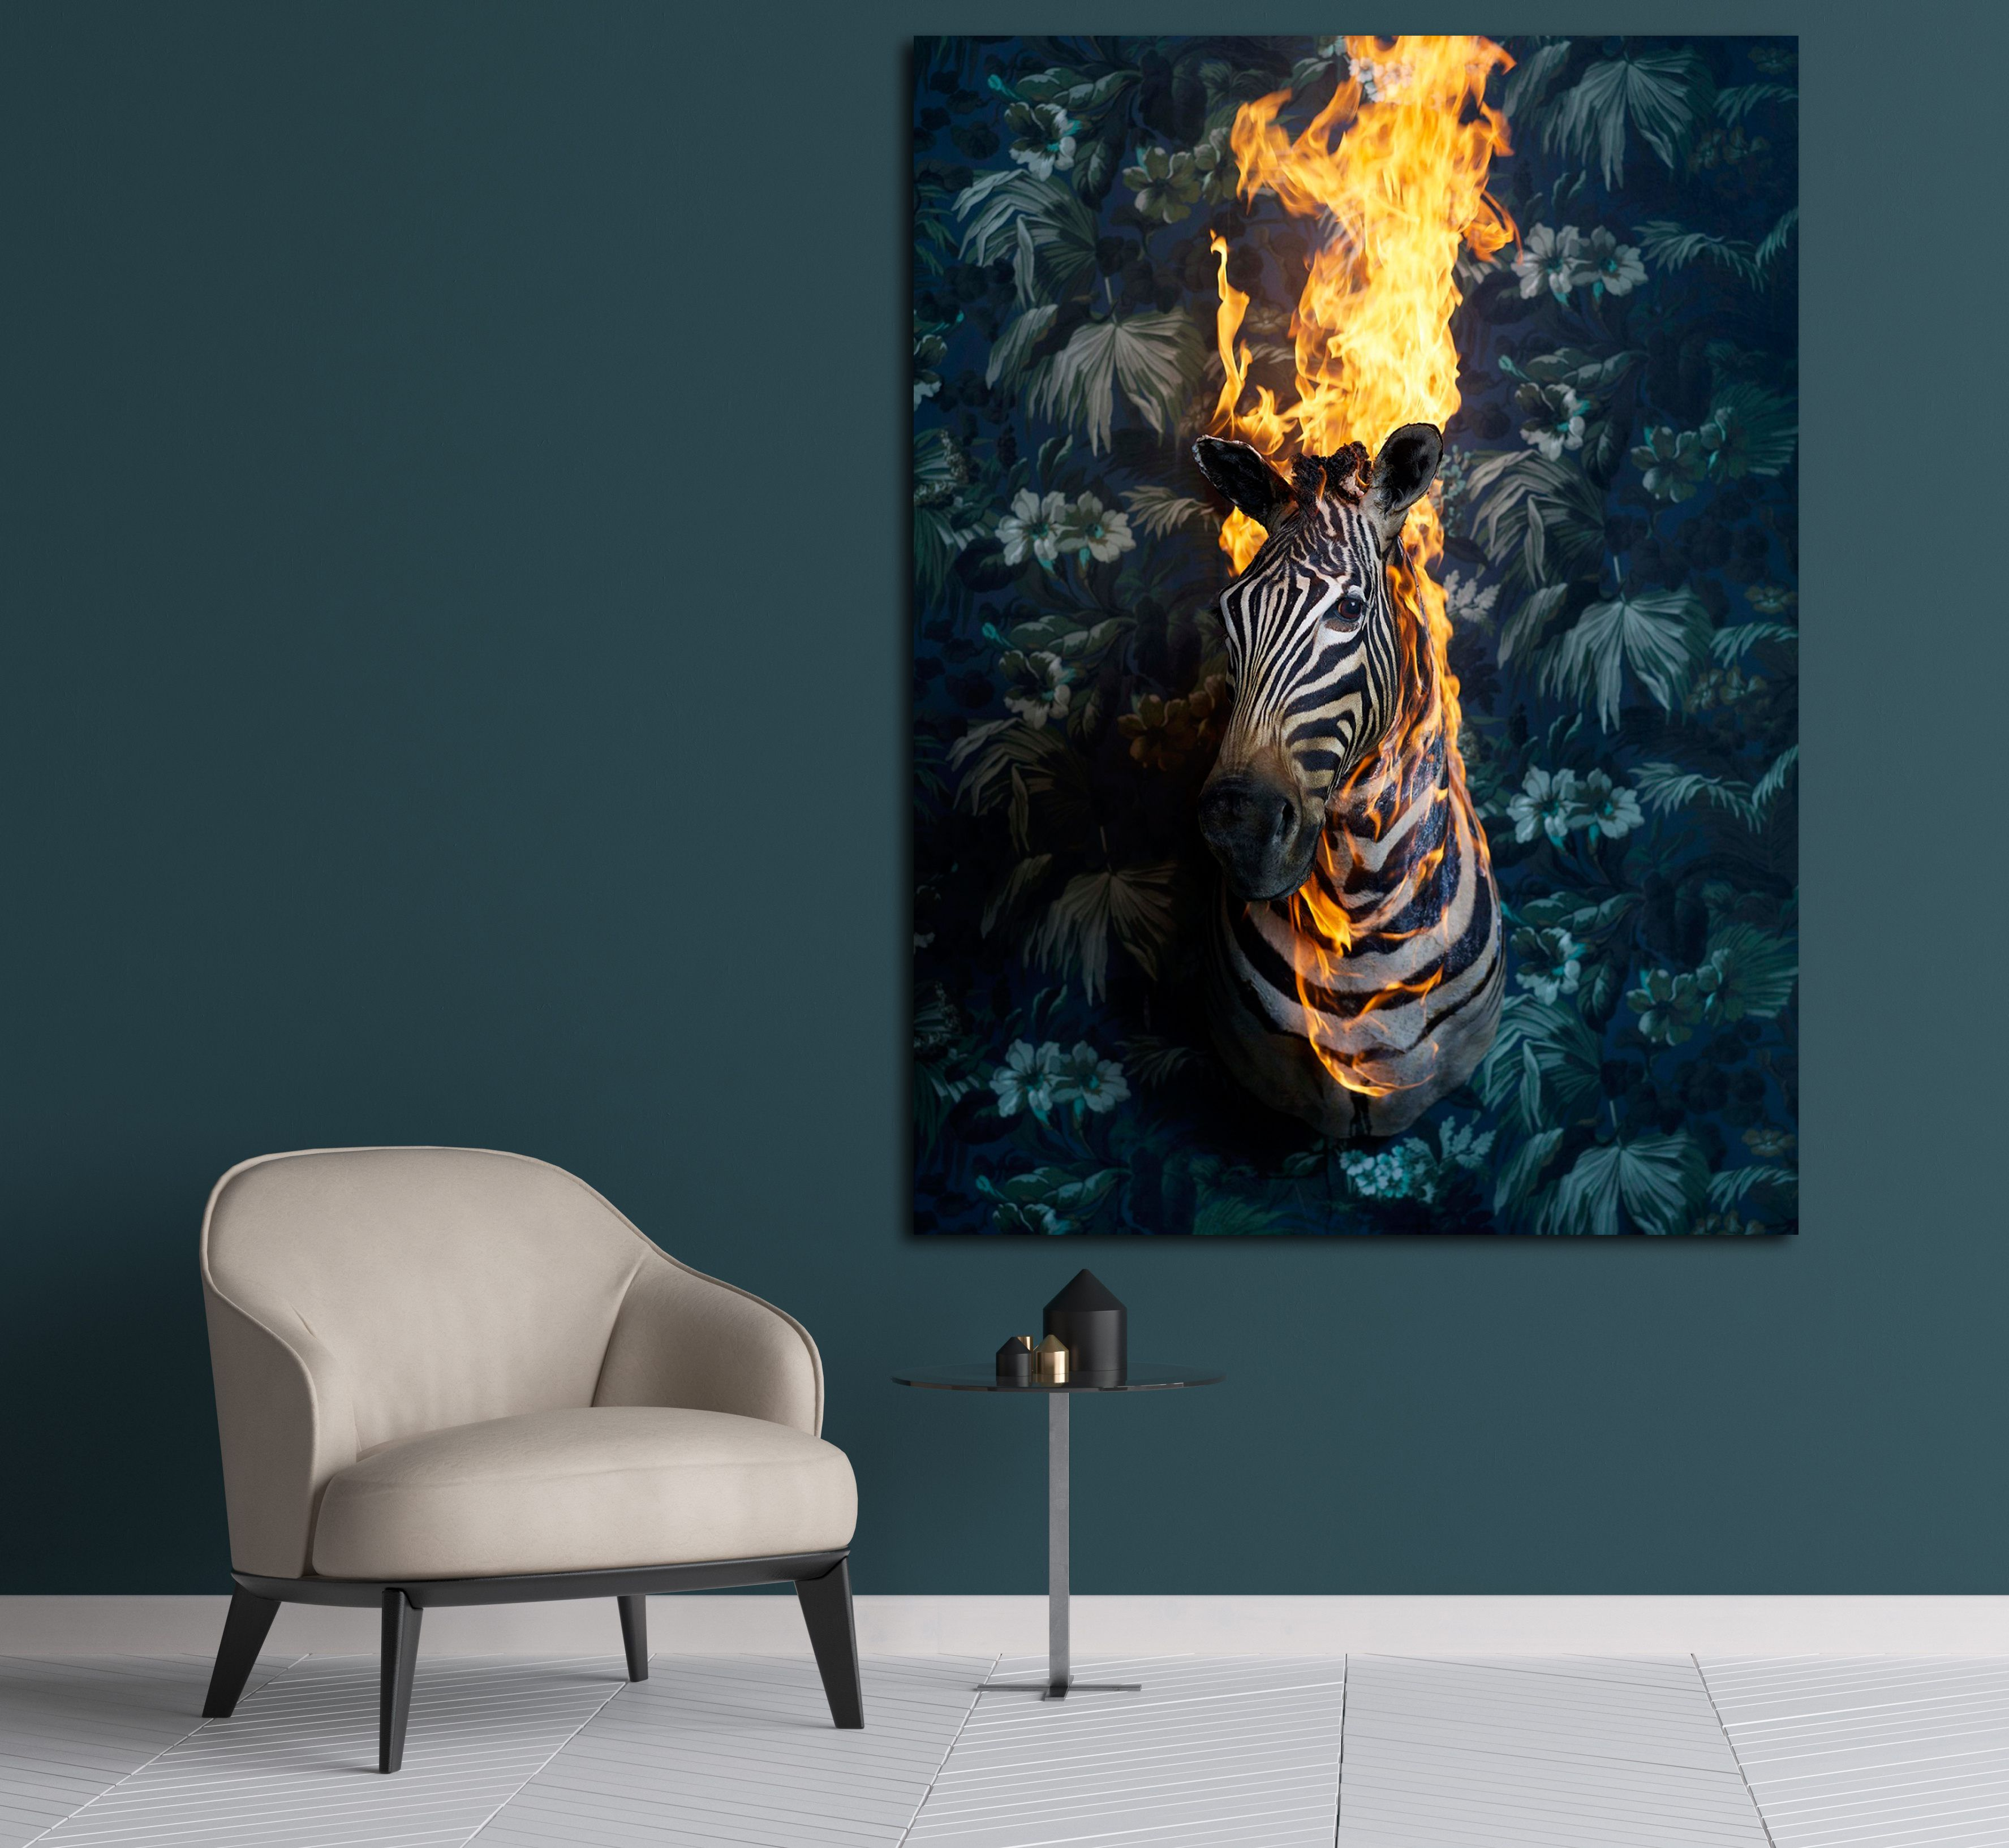 Zebra, série Residence of Impermanence,Christian Houge,Photographie contemporaine, detail 2